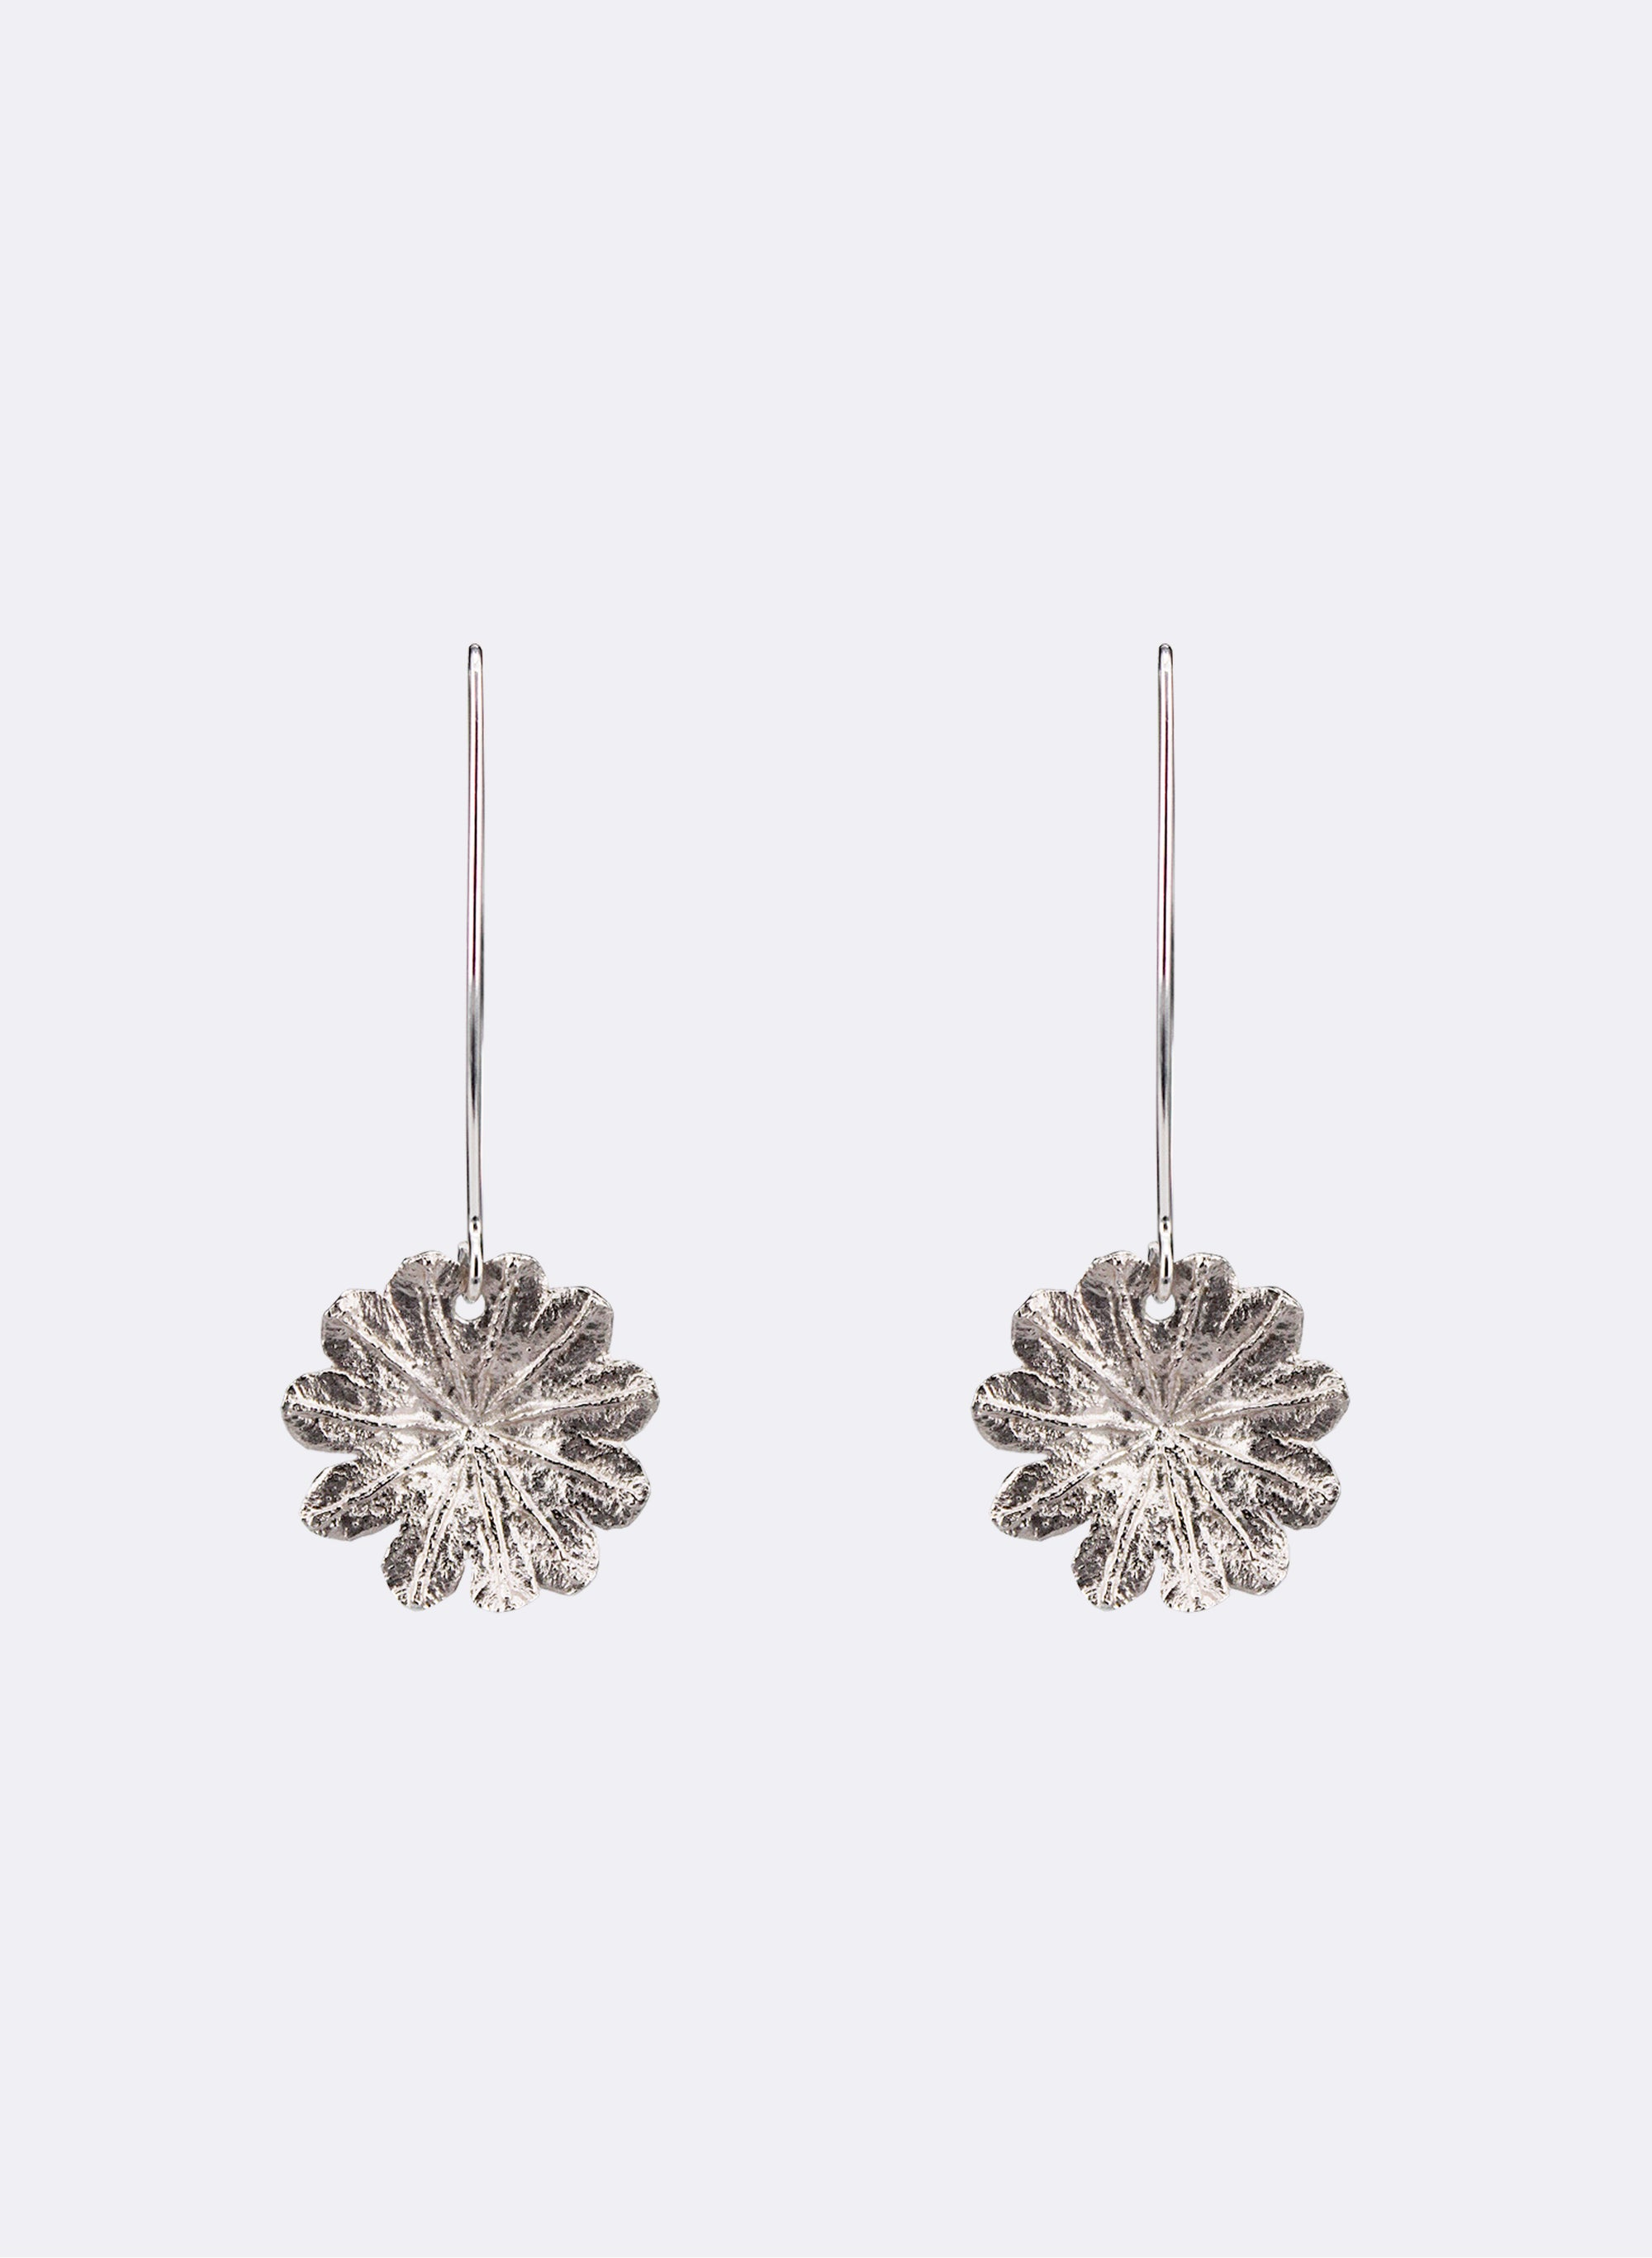 Poppy Top Hooks - Stirling Silver